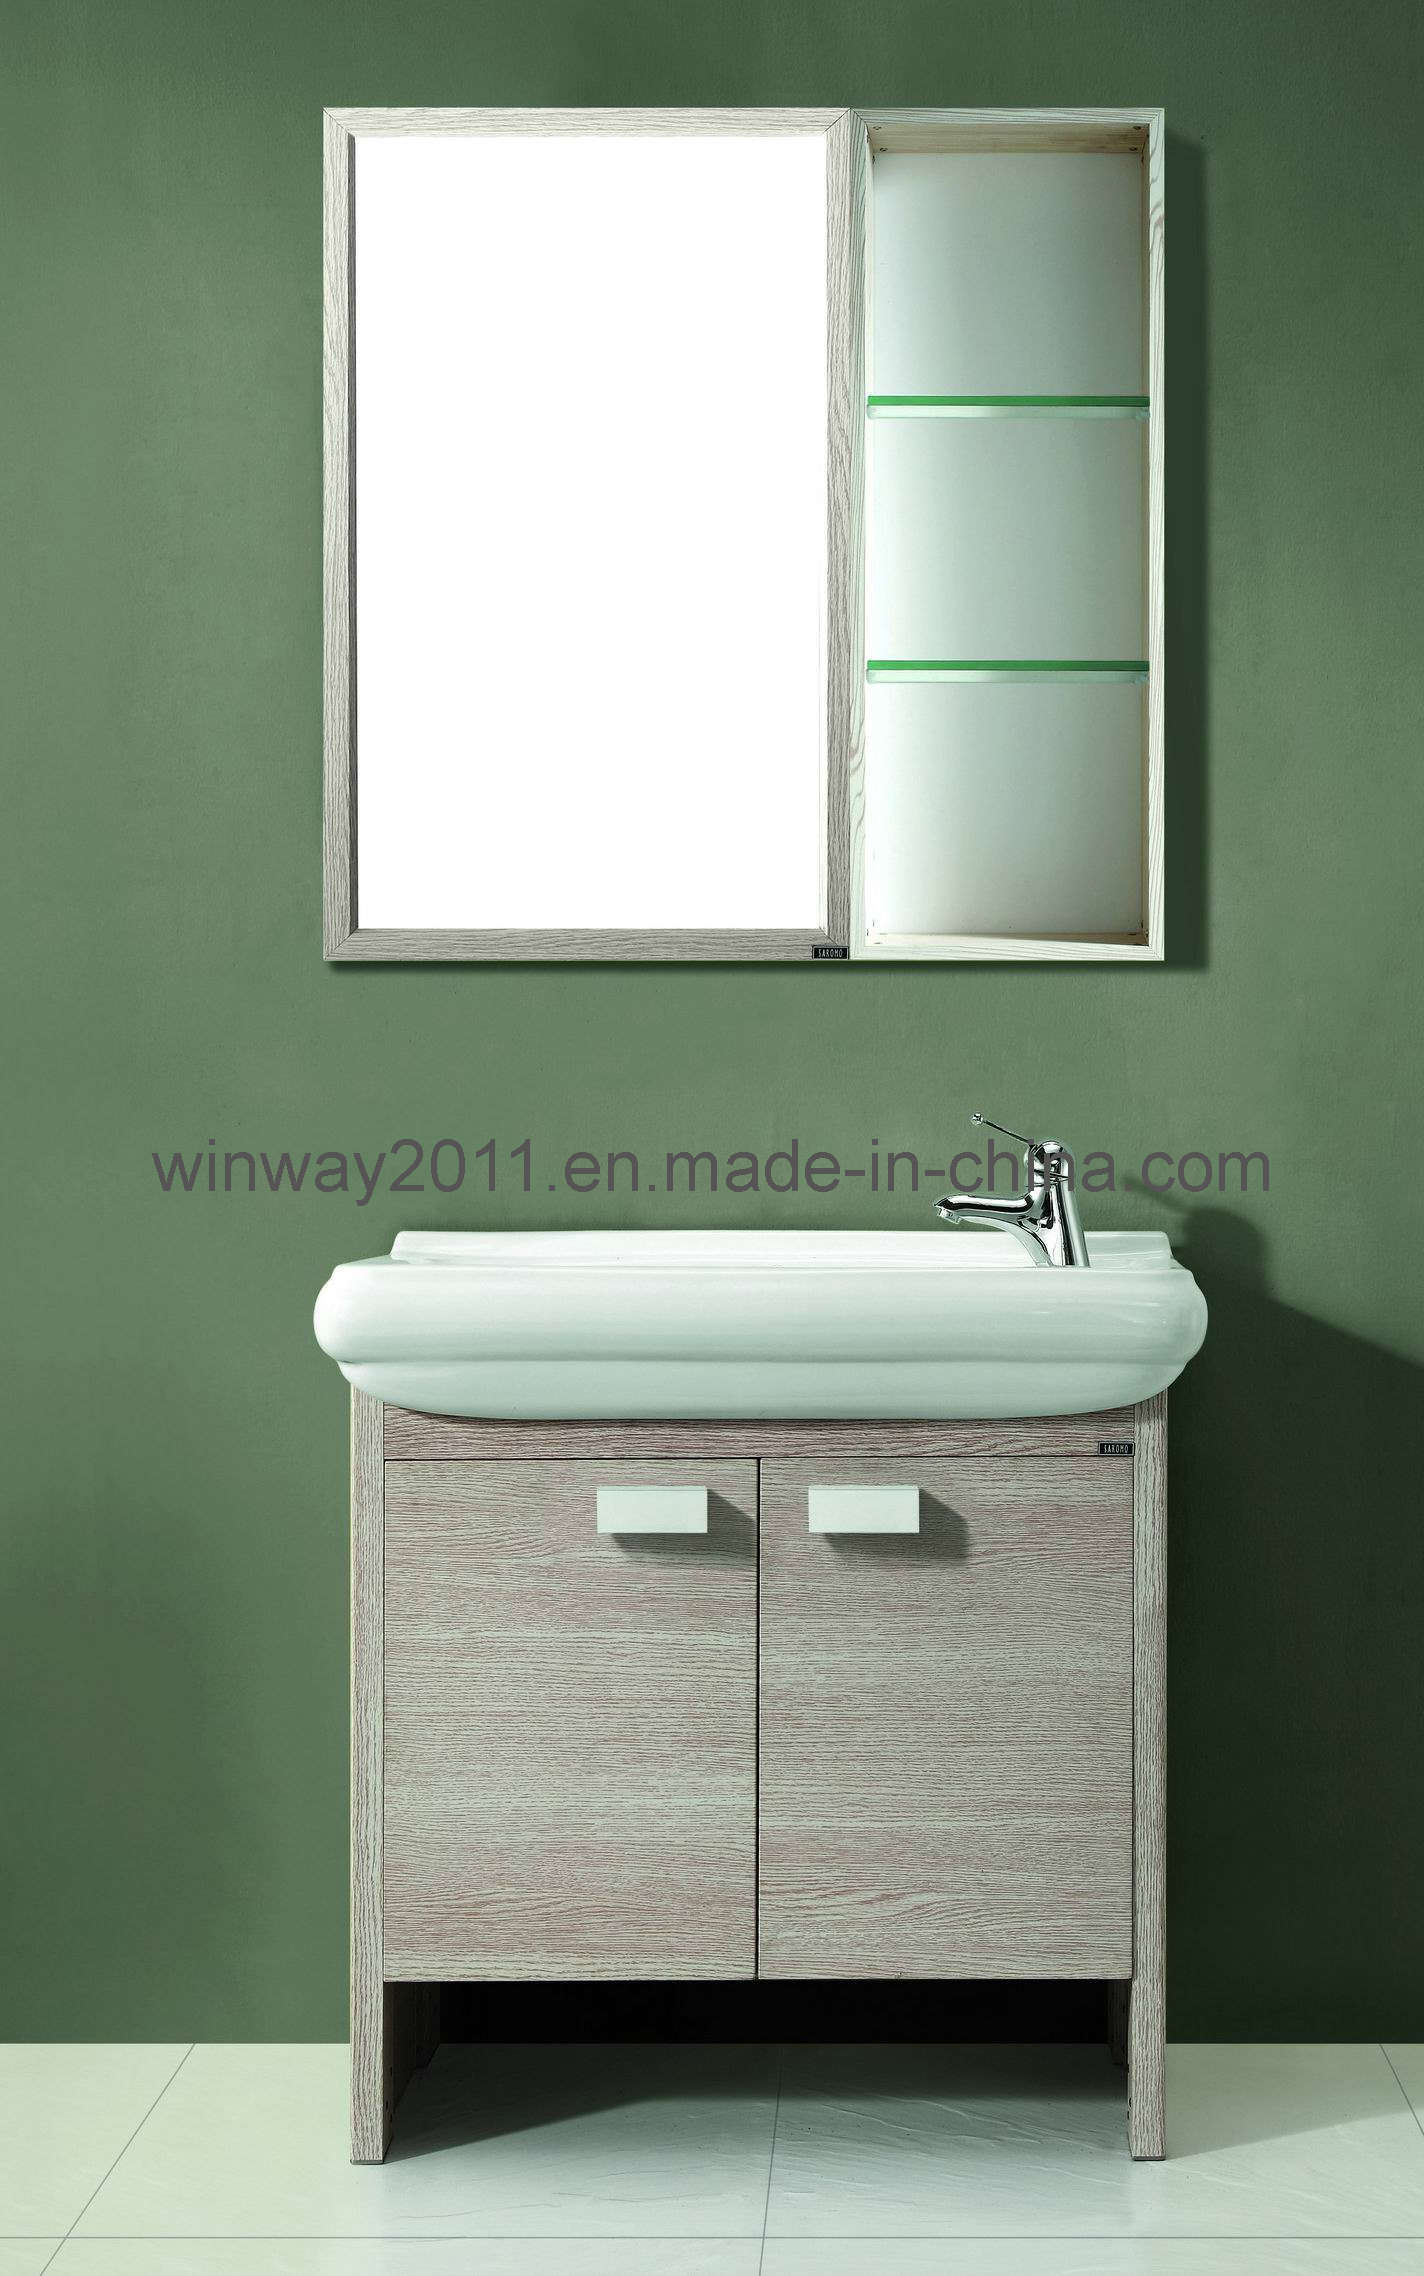 Metal Bathroom Cabinet Vanity Ws 68033 China Stainless Cabinet Metal Cabinet